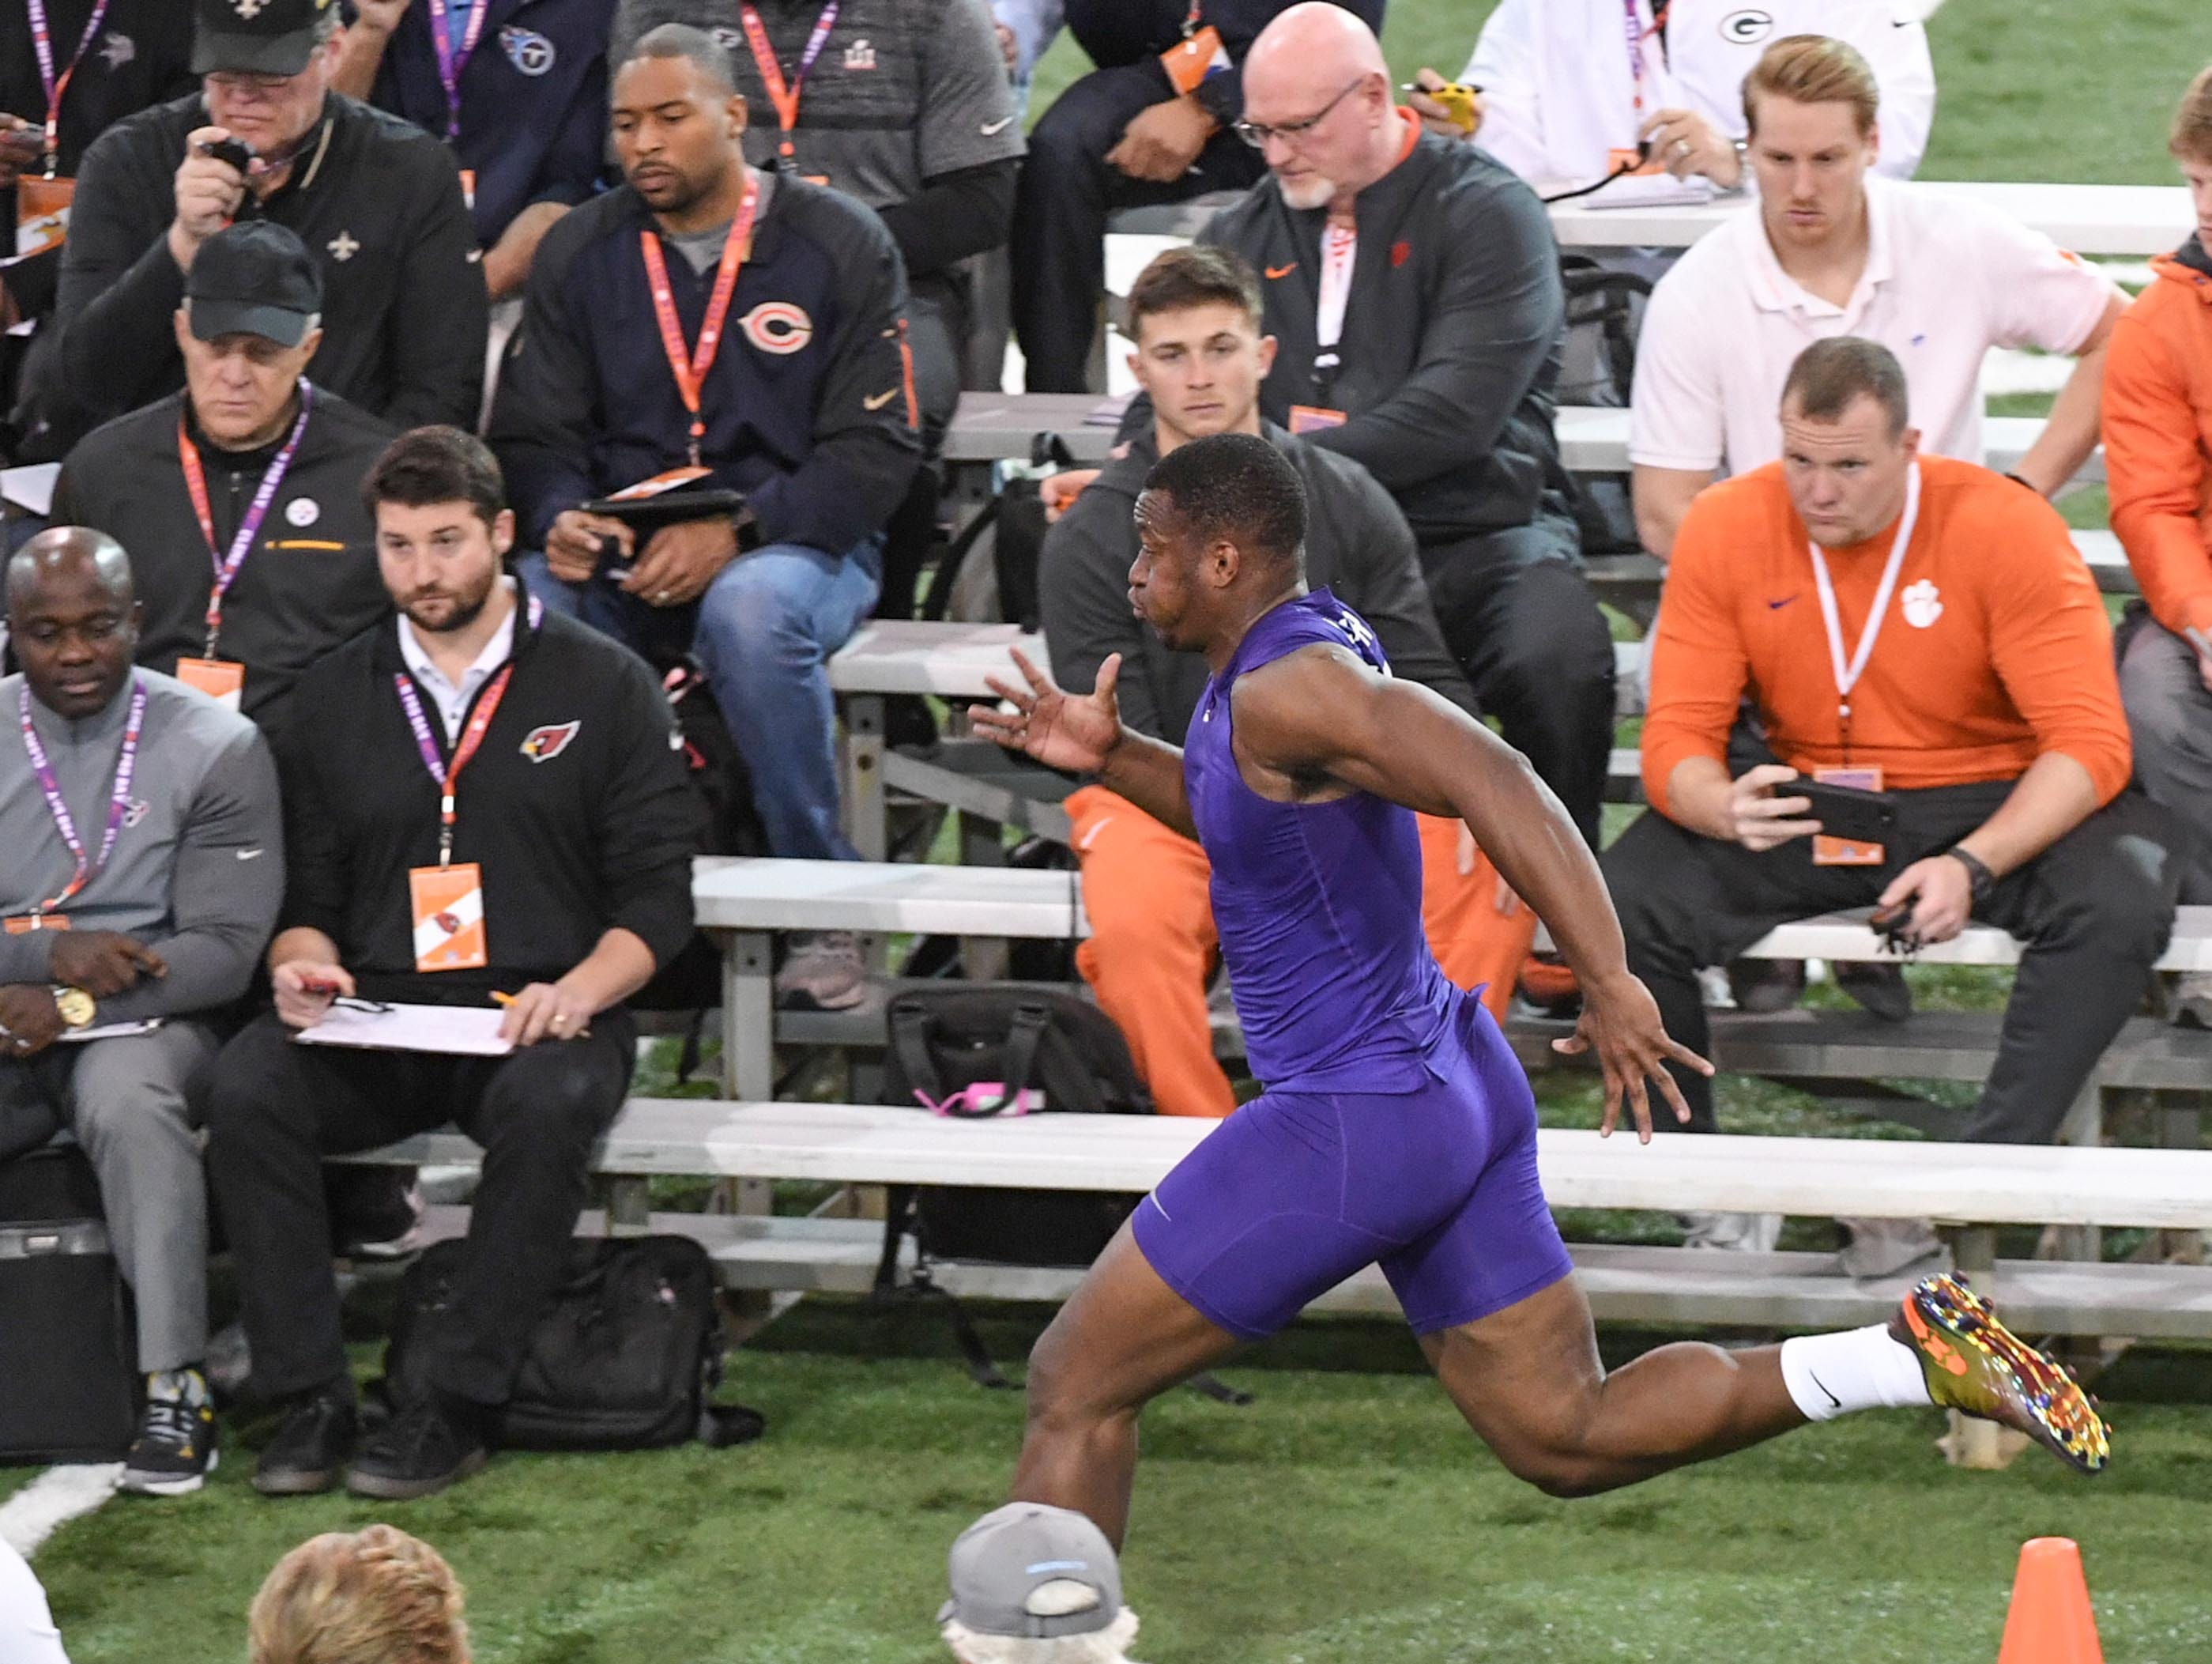 Defender Tre Lamar III during Clemson pro day at the Poe Indoor Facility in Clemson Thursday, March 14, 2019.